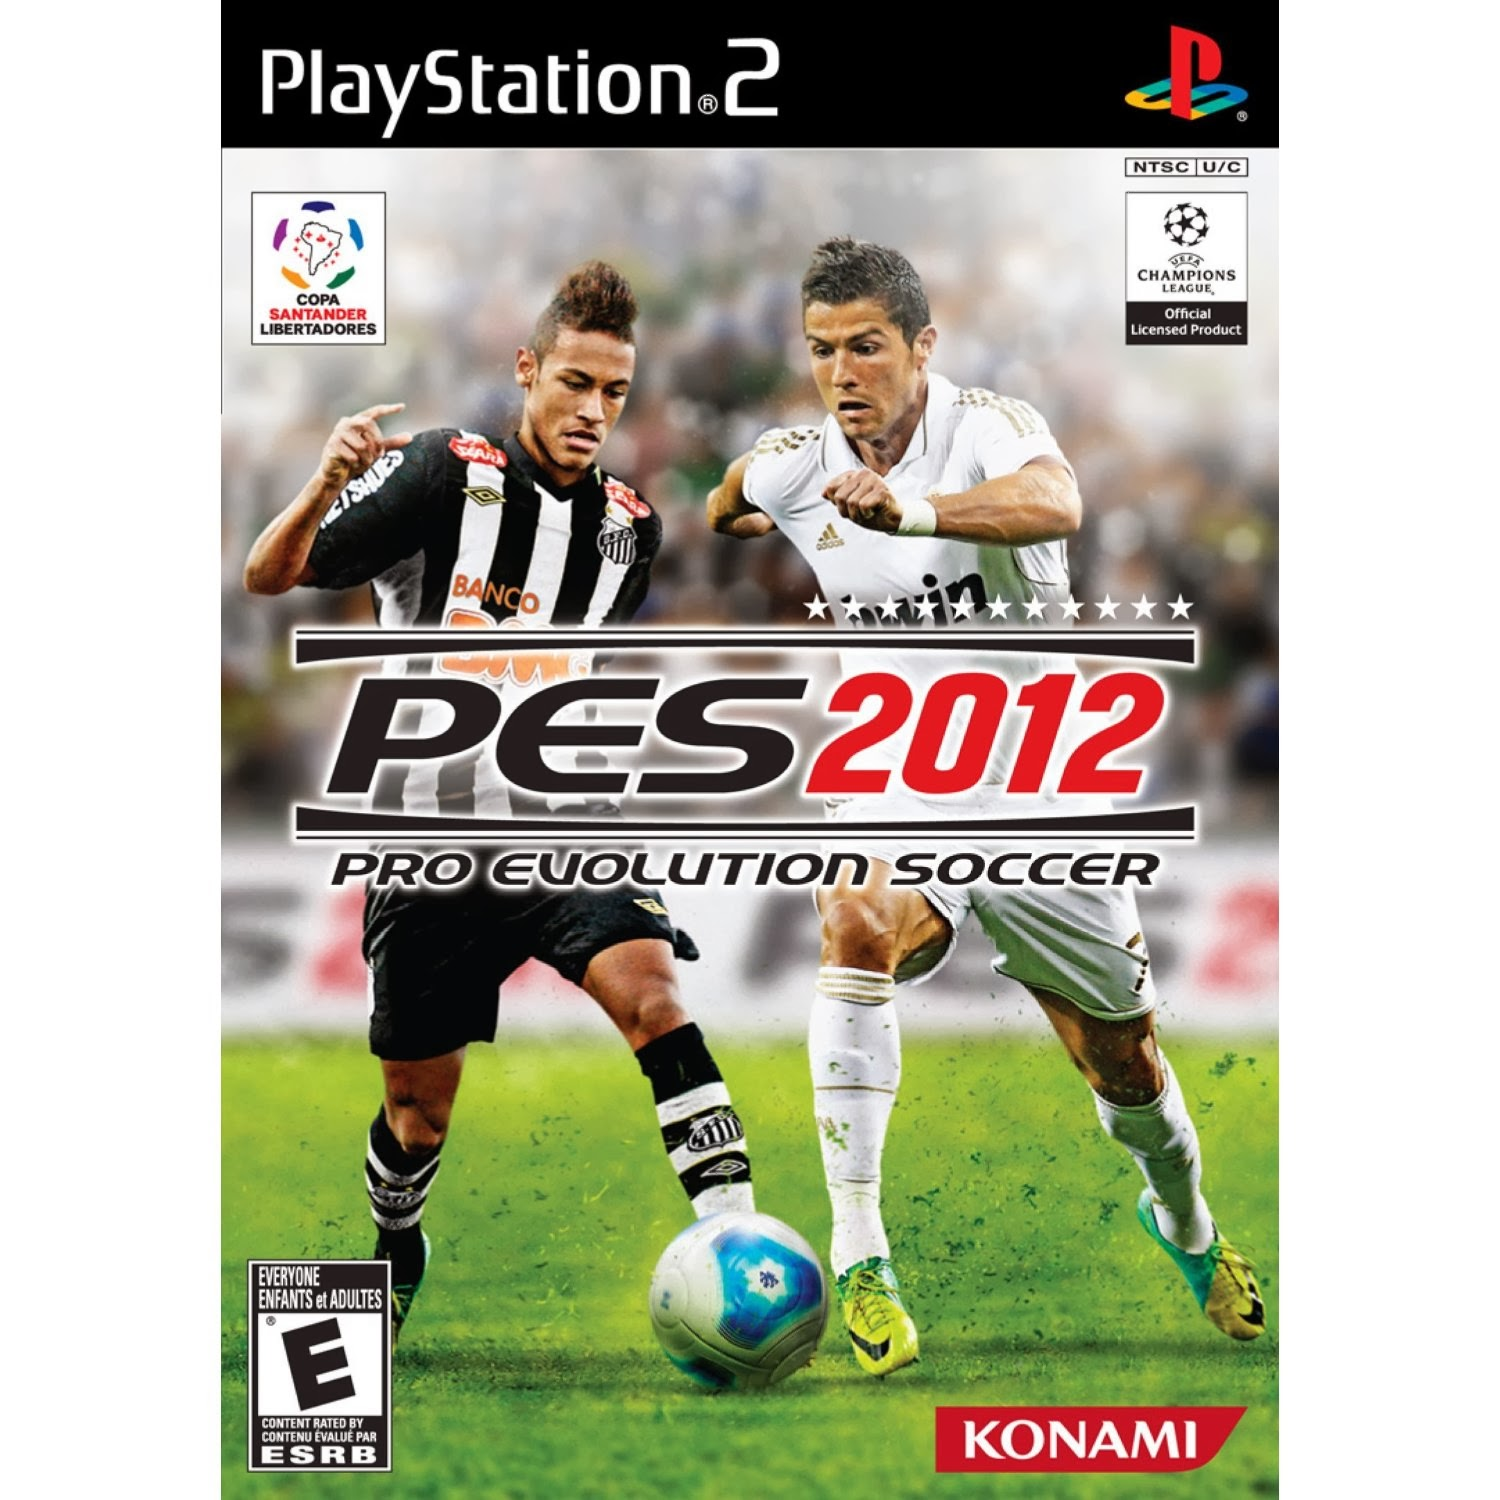 Pes 2012 pc highly compressed